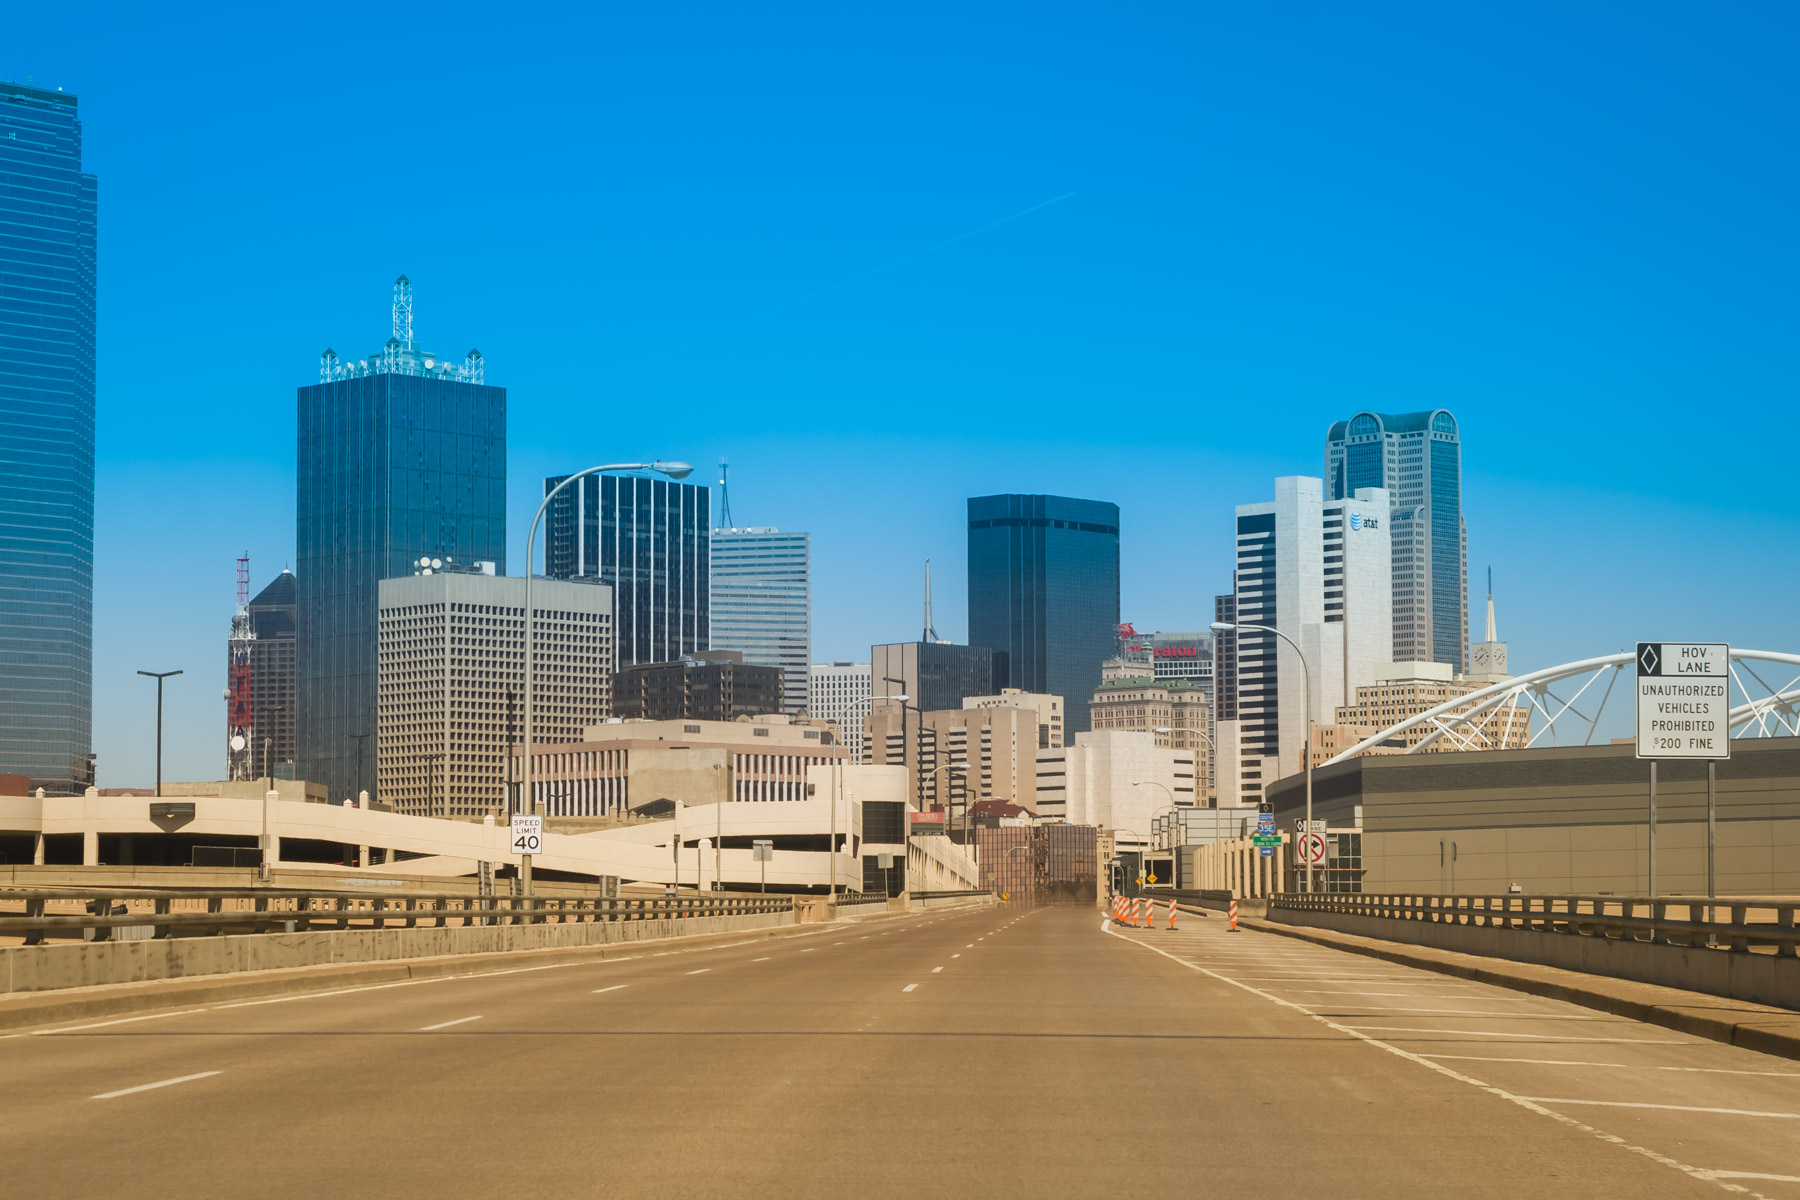 Part of the Dallas, Texas skyline as seen crossing the Houston Street Viaduct from Oak Cliff.